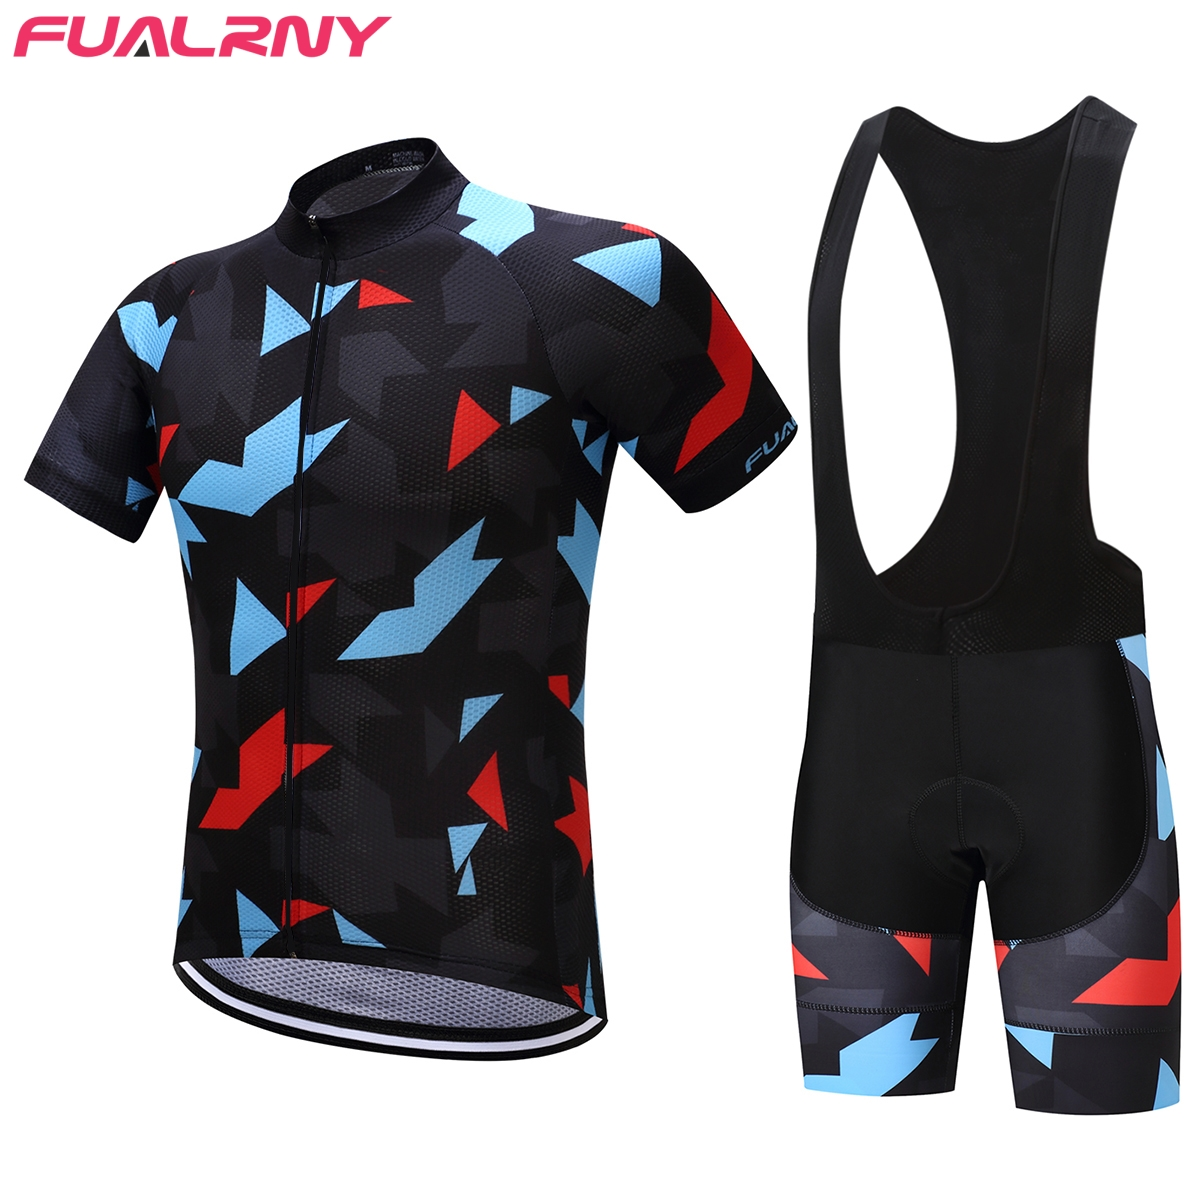 FUALRNY Short Sleeve Cycling set Summer Mountain Bike Clothing Pro Bicycle Jersey Man Sportswear Suit Maillot Ropa Ciclismo 2017 nuckily ma008 mb008 men short sleeve bicycle cycling suit